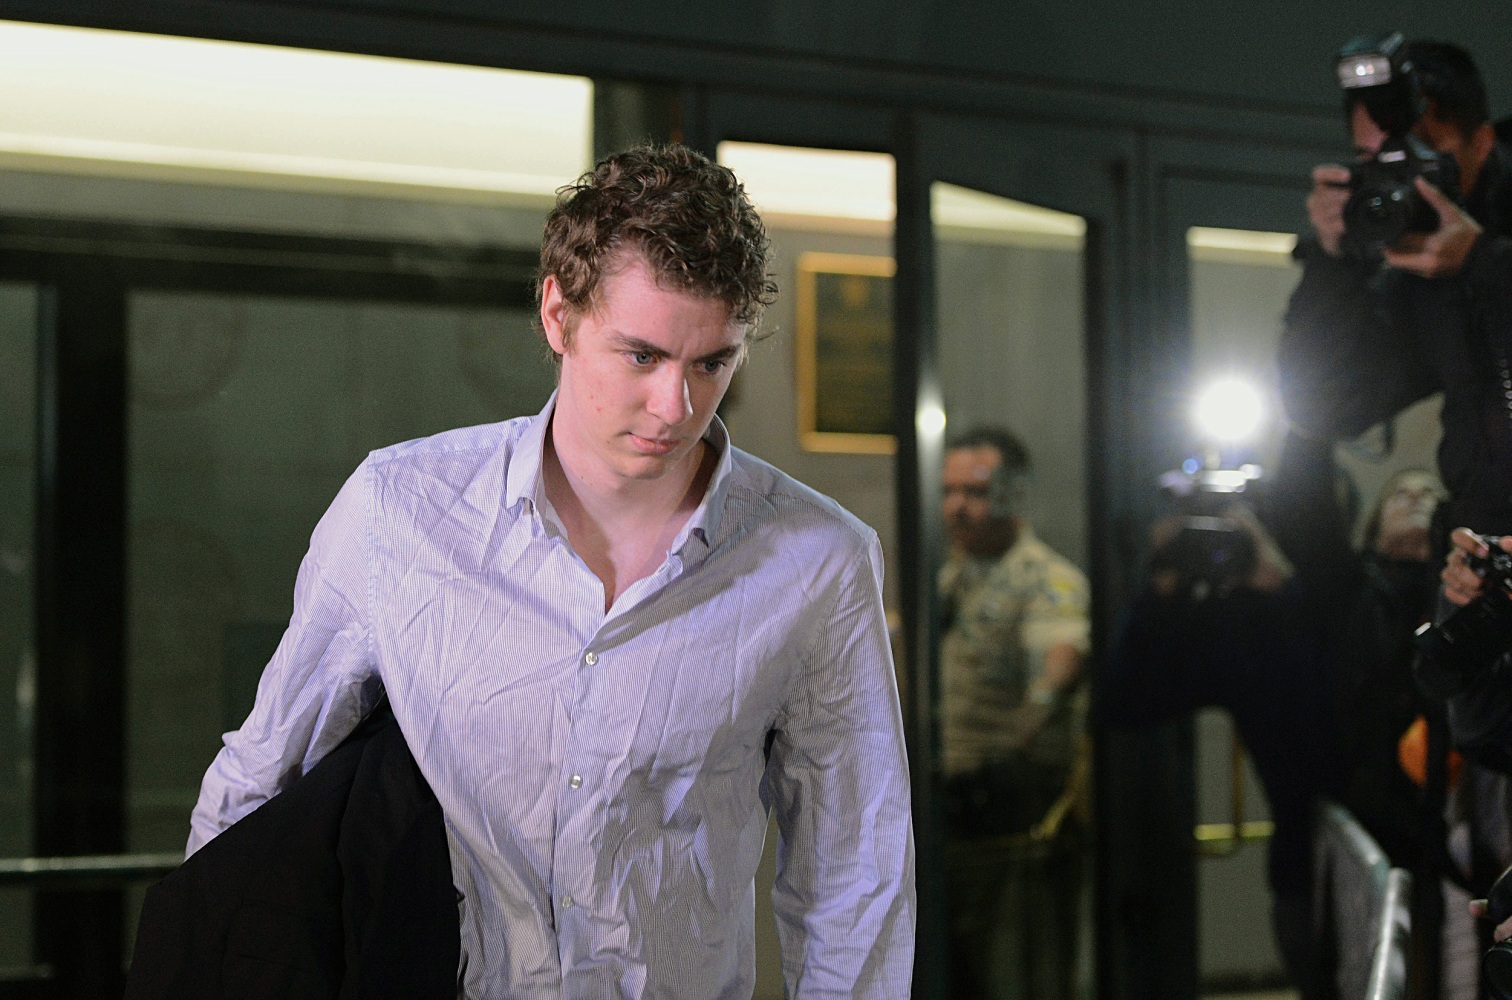 Brock Turner, convicted of sexual assault, asks for new trial